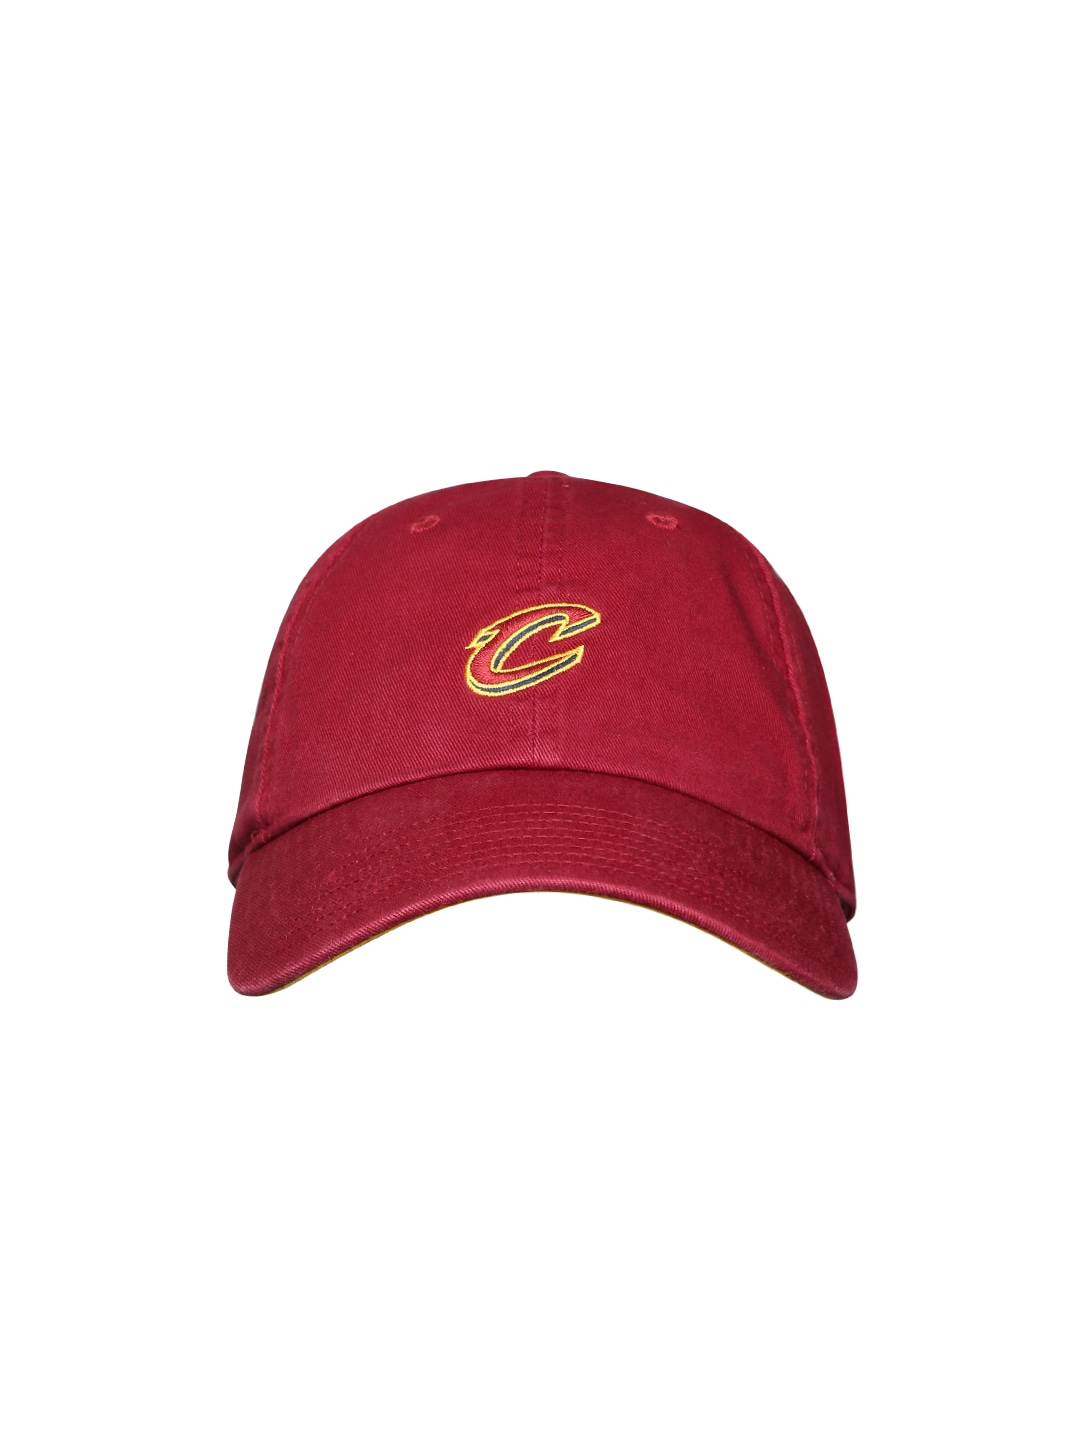 cd35a84a4d22a Nike Cap - Buy Nike Caps for Men   Women Online in India